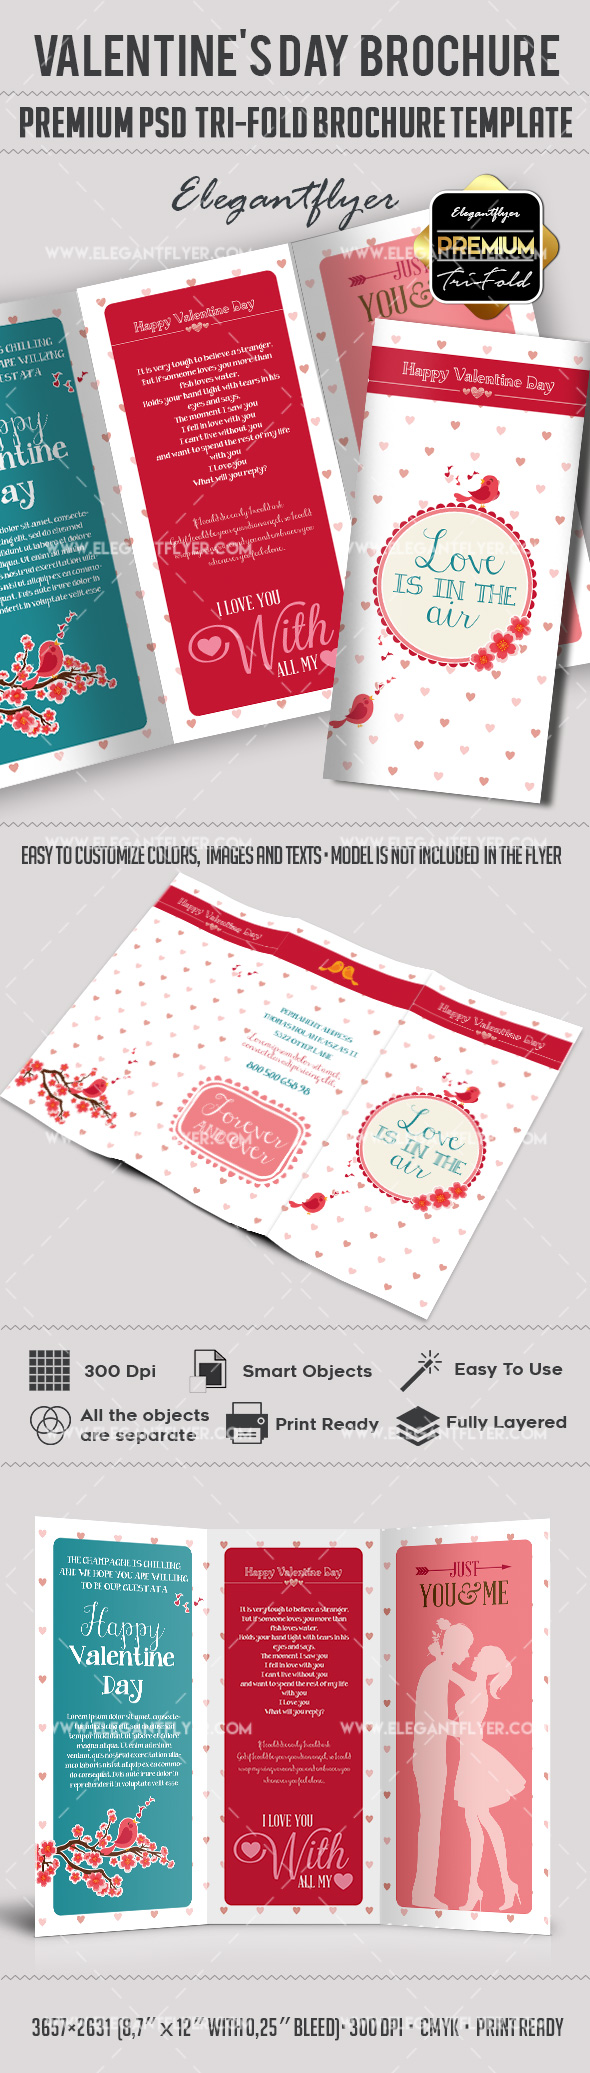 Brochure for valentines day by elegantflyer for Single page brochure templates psd